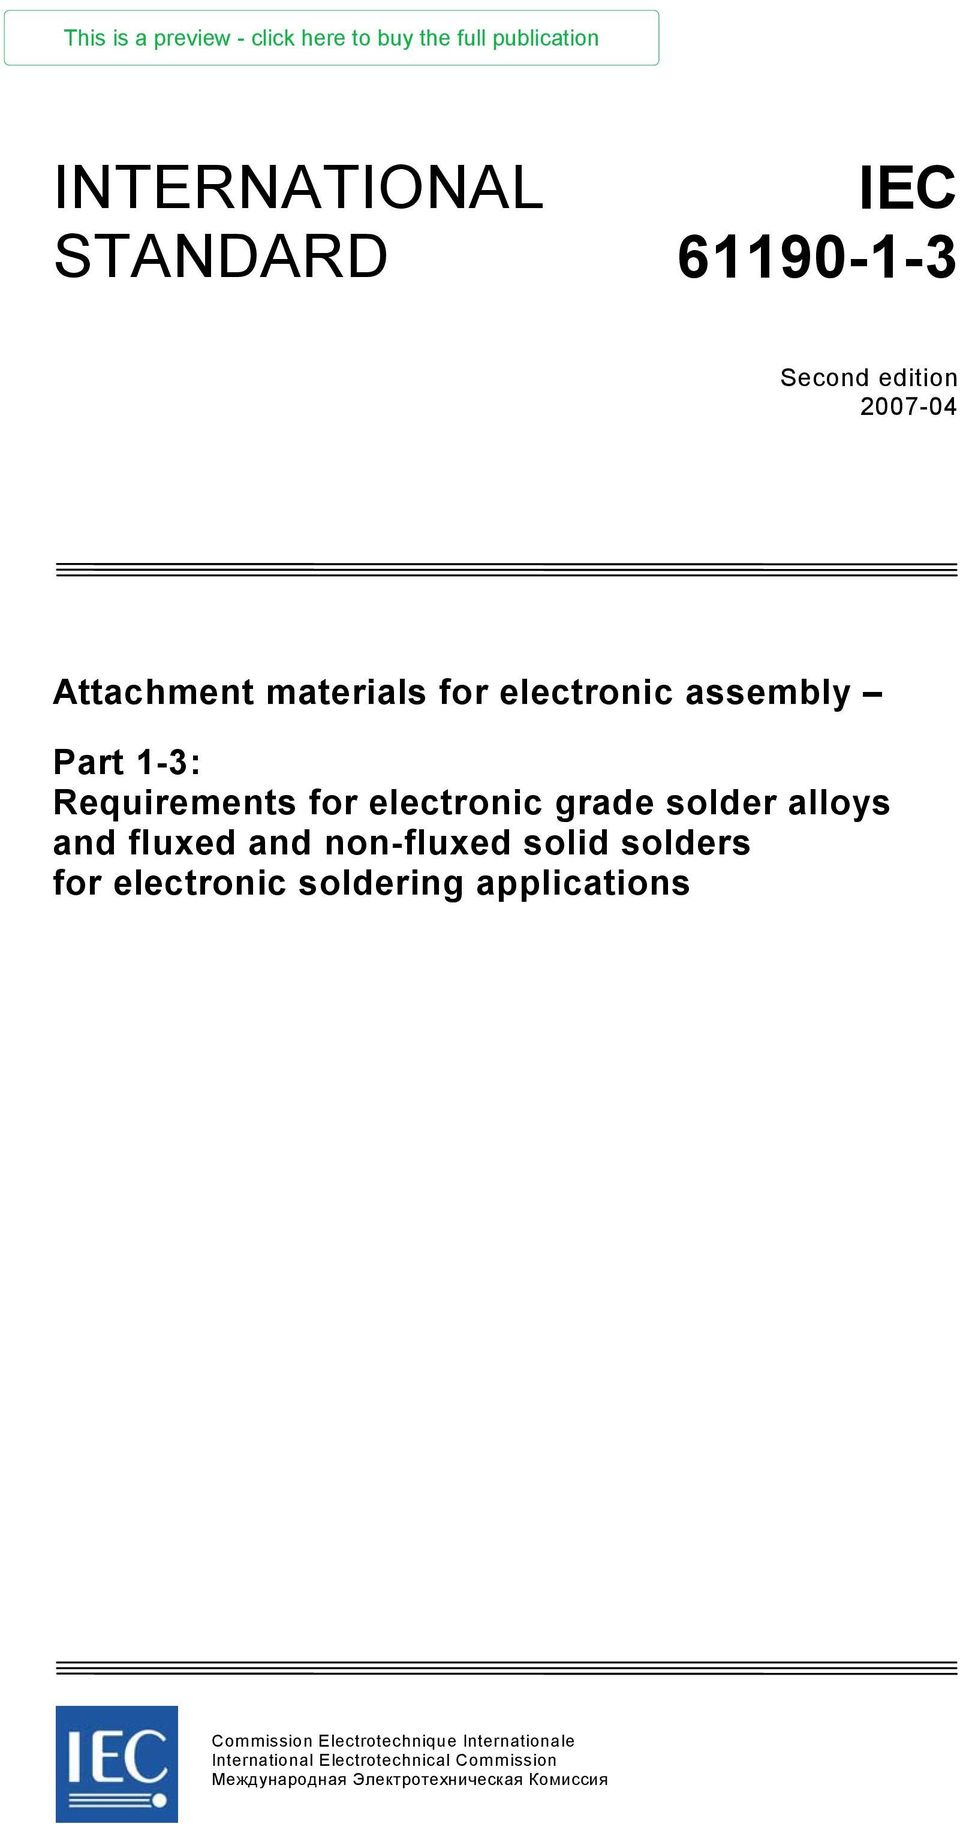 solders for electronic soldering applications Commission Electrotechnique  Internationale International